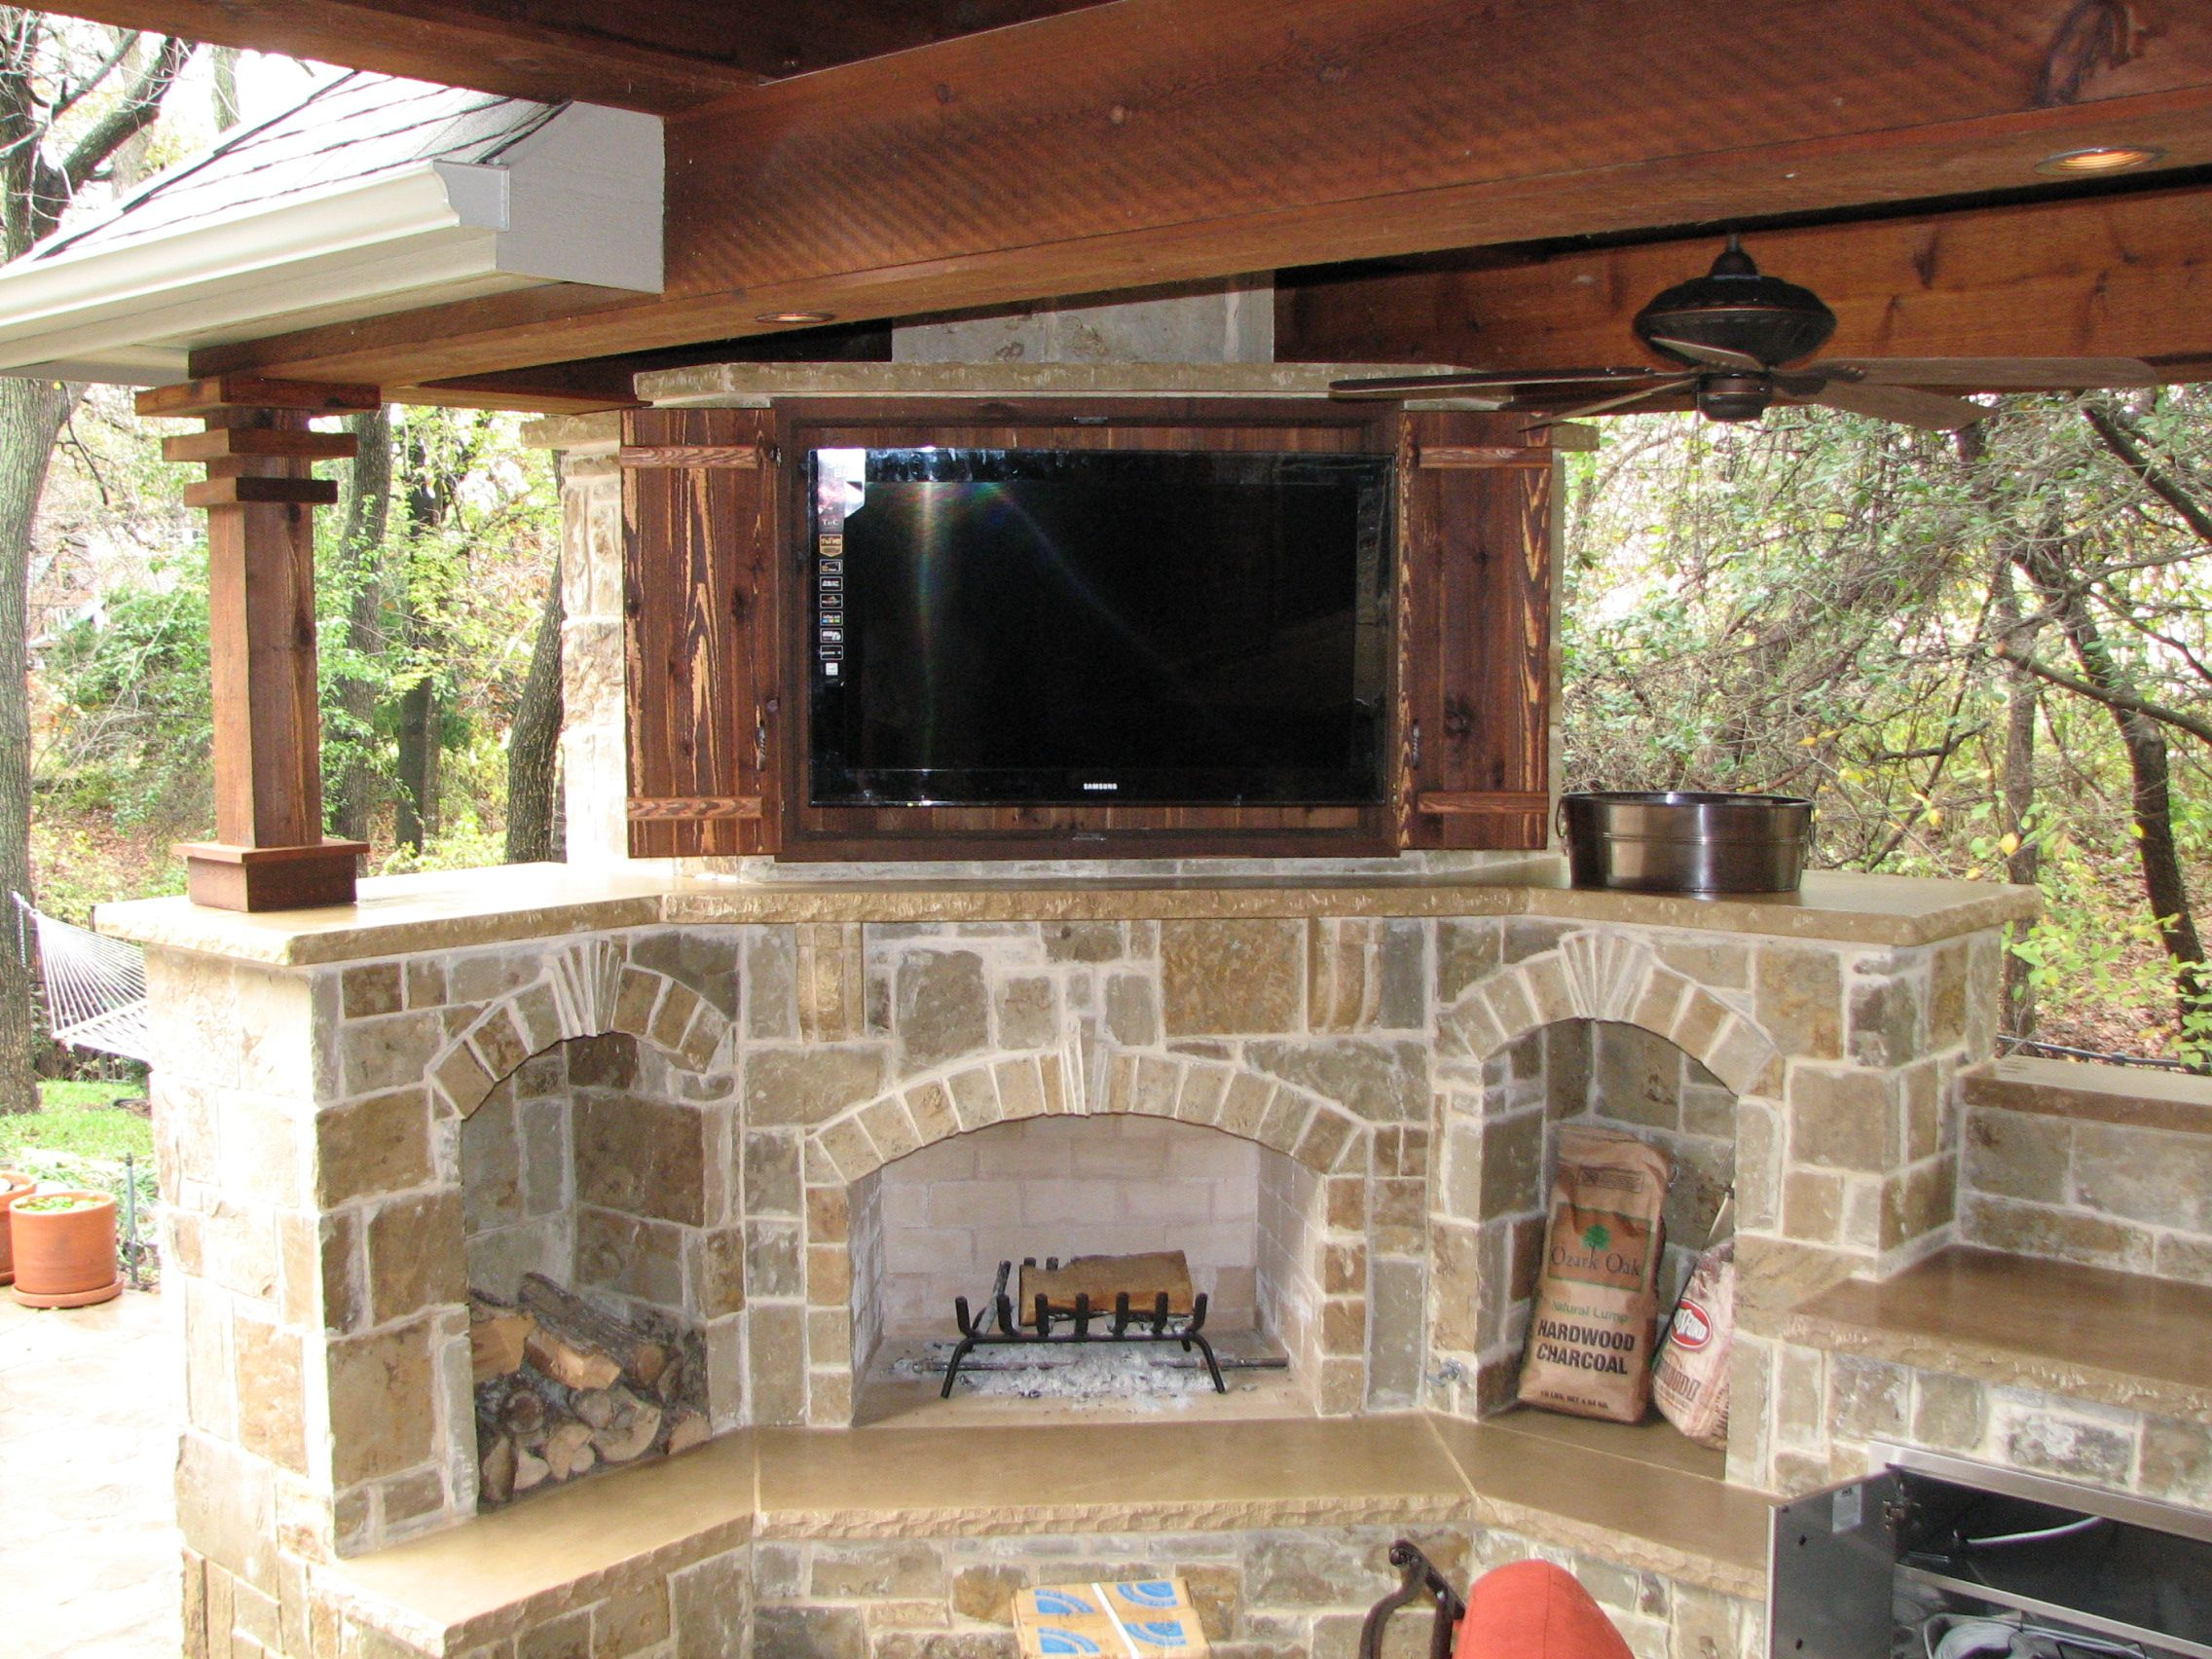 Rustic Outdoor Storage Cabinets With Doors Above Fireplace Design